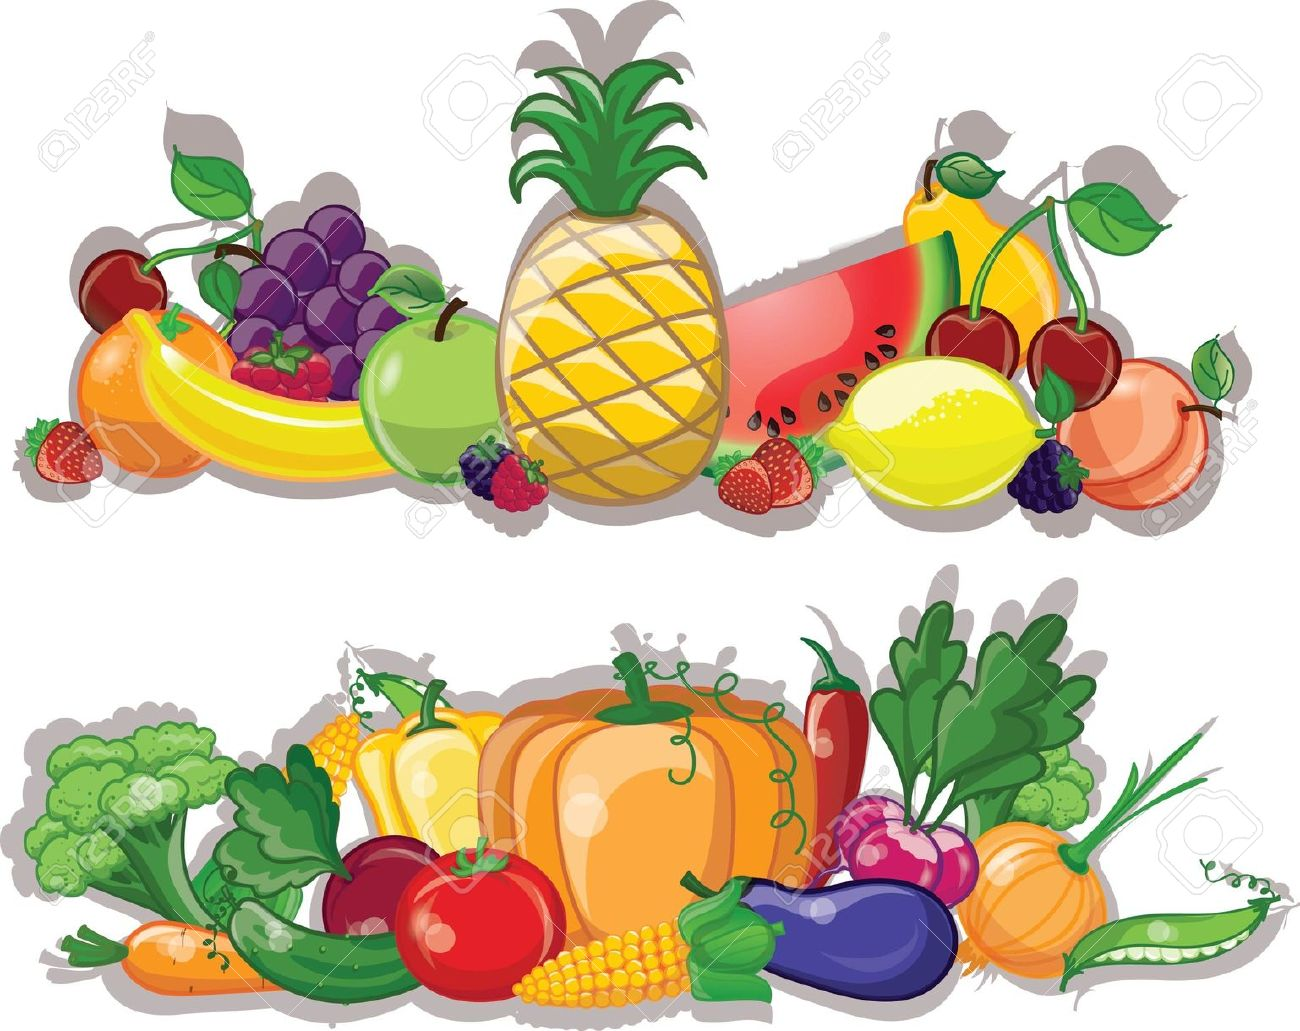 Fresh fruit and vegetables clipart.